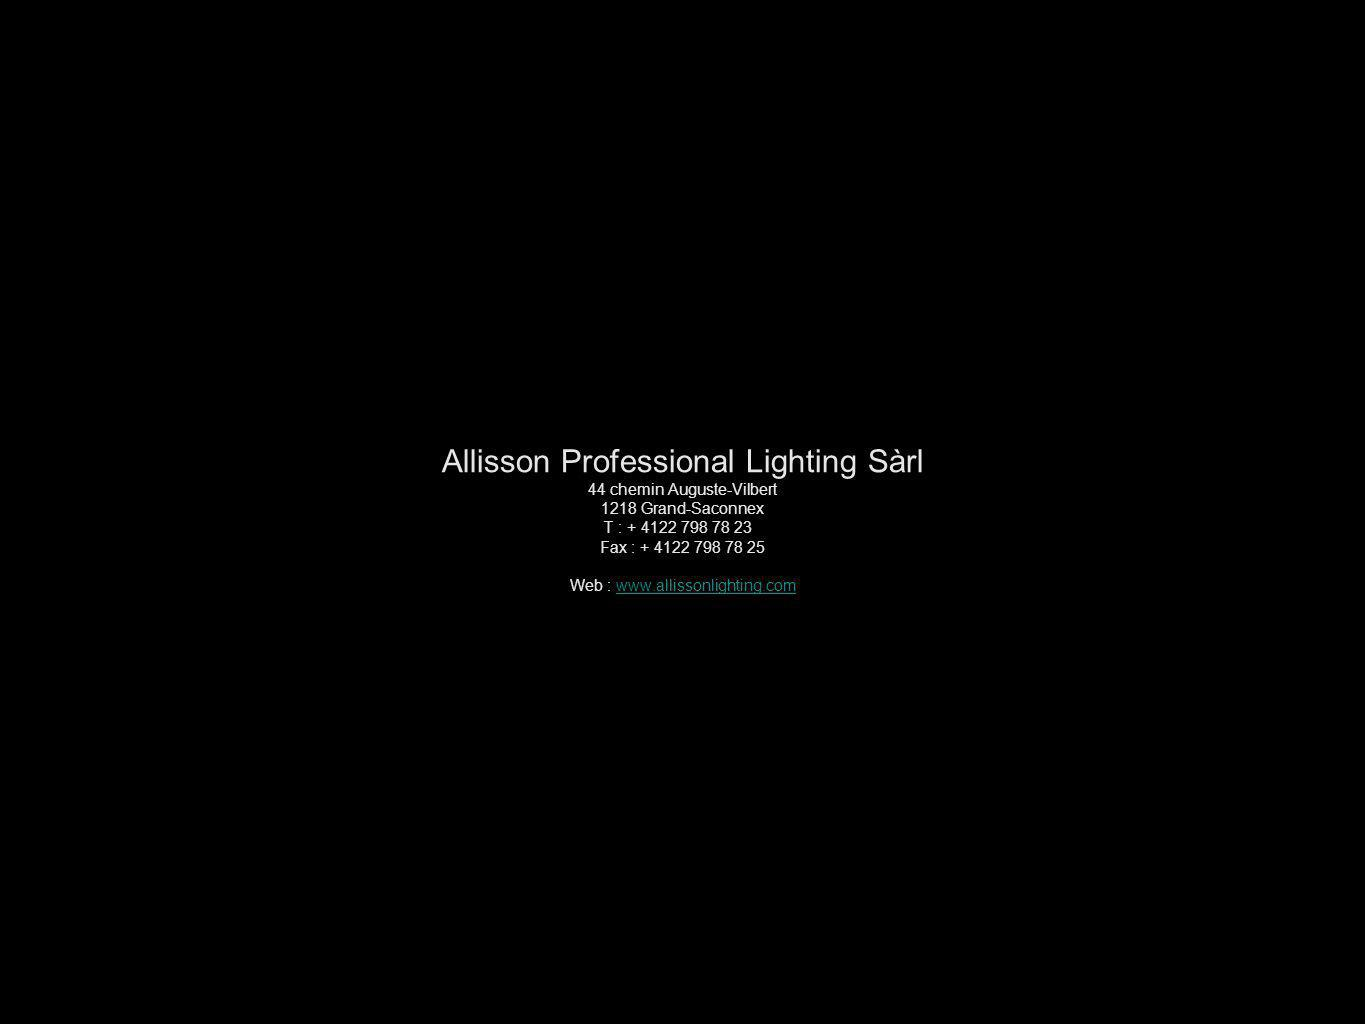 Allisson Professional Lighting Sàrl 44 chemin Auguste-Vilbert 1218 Grand-Saconnex T : Fax : Web :